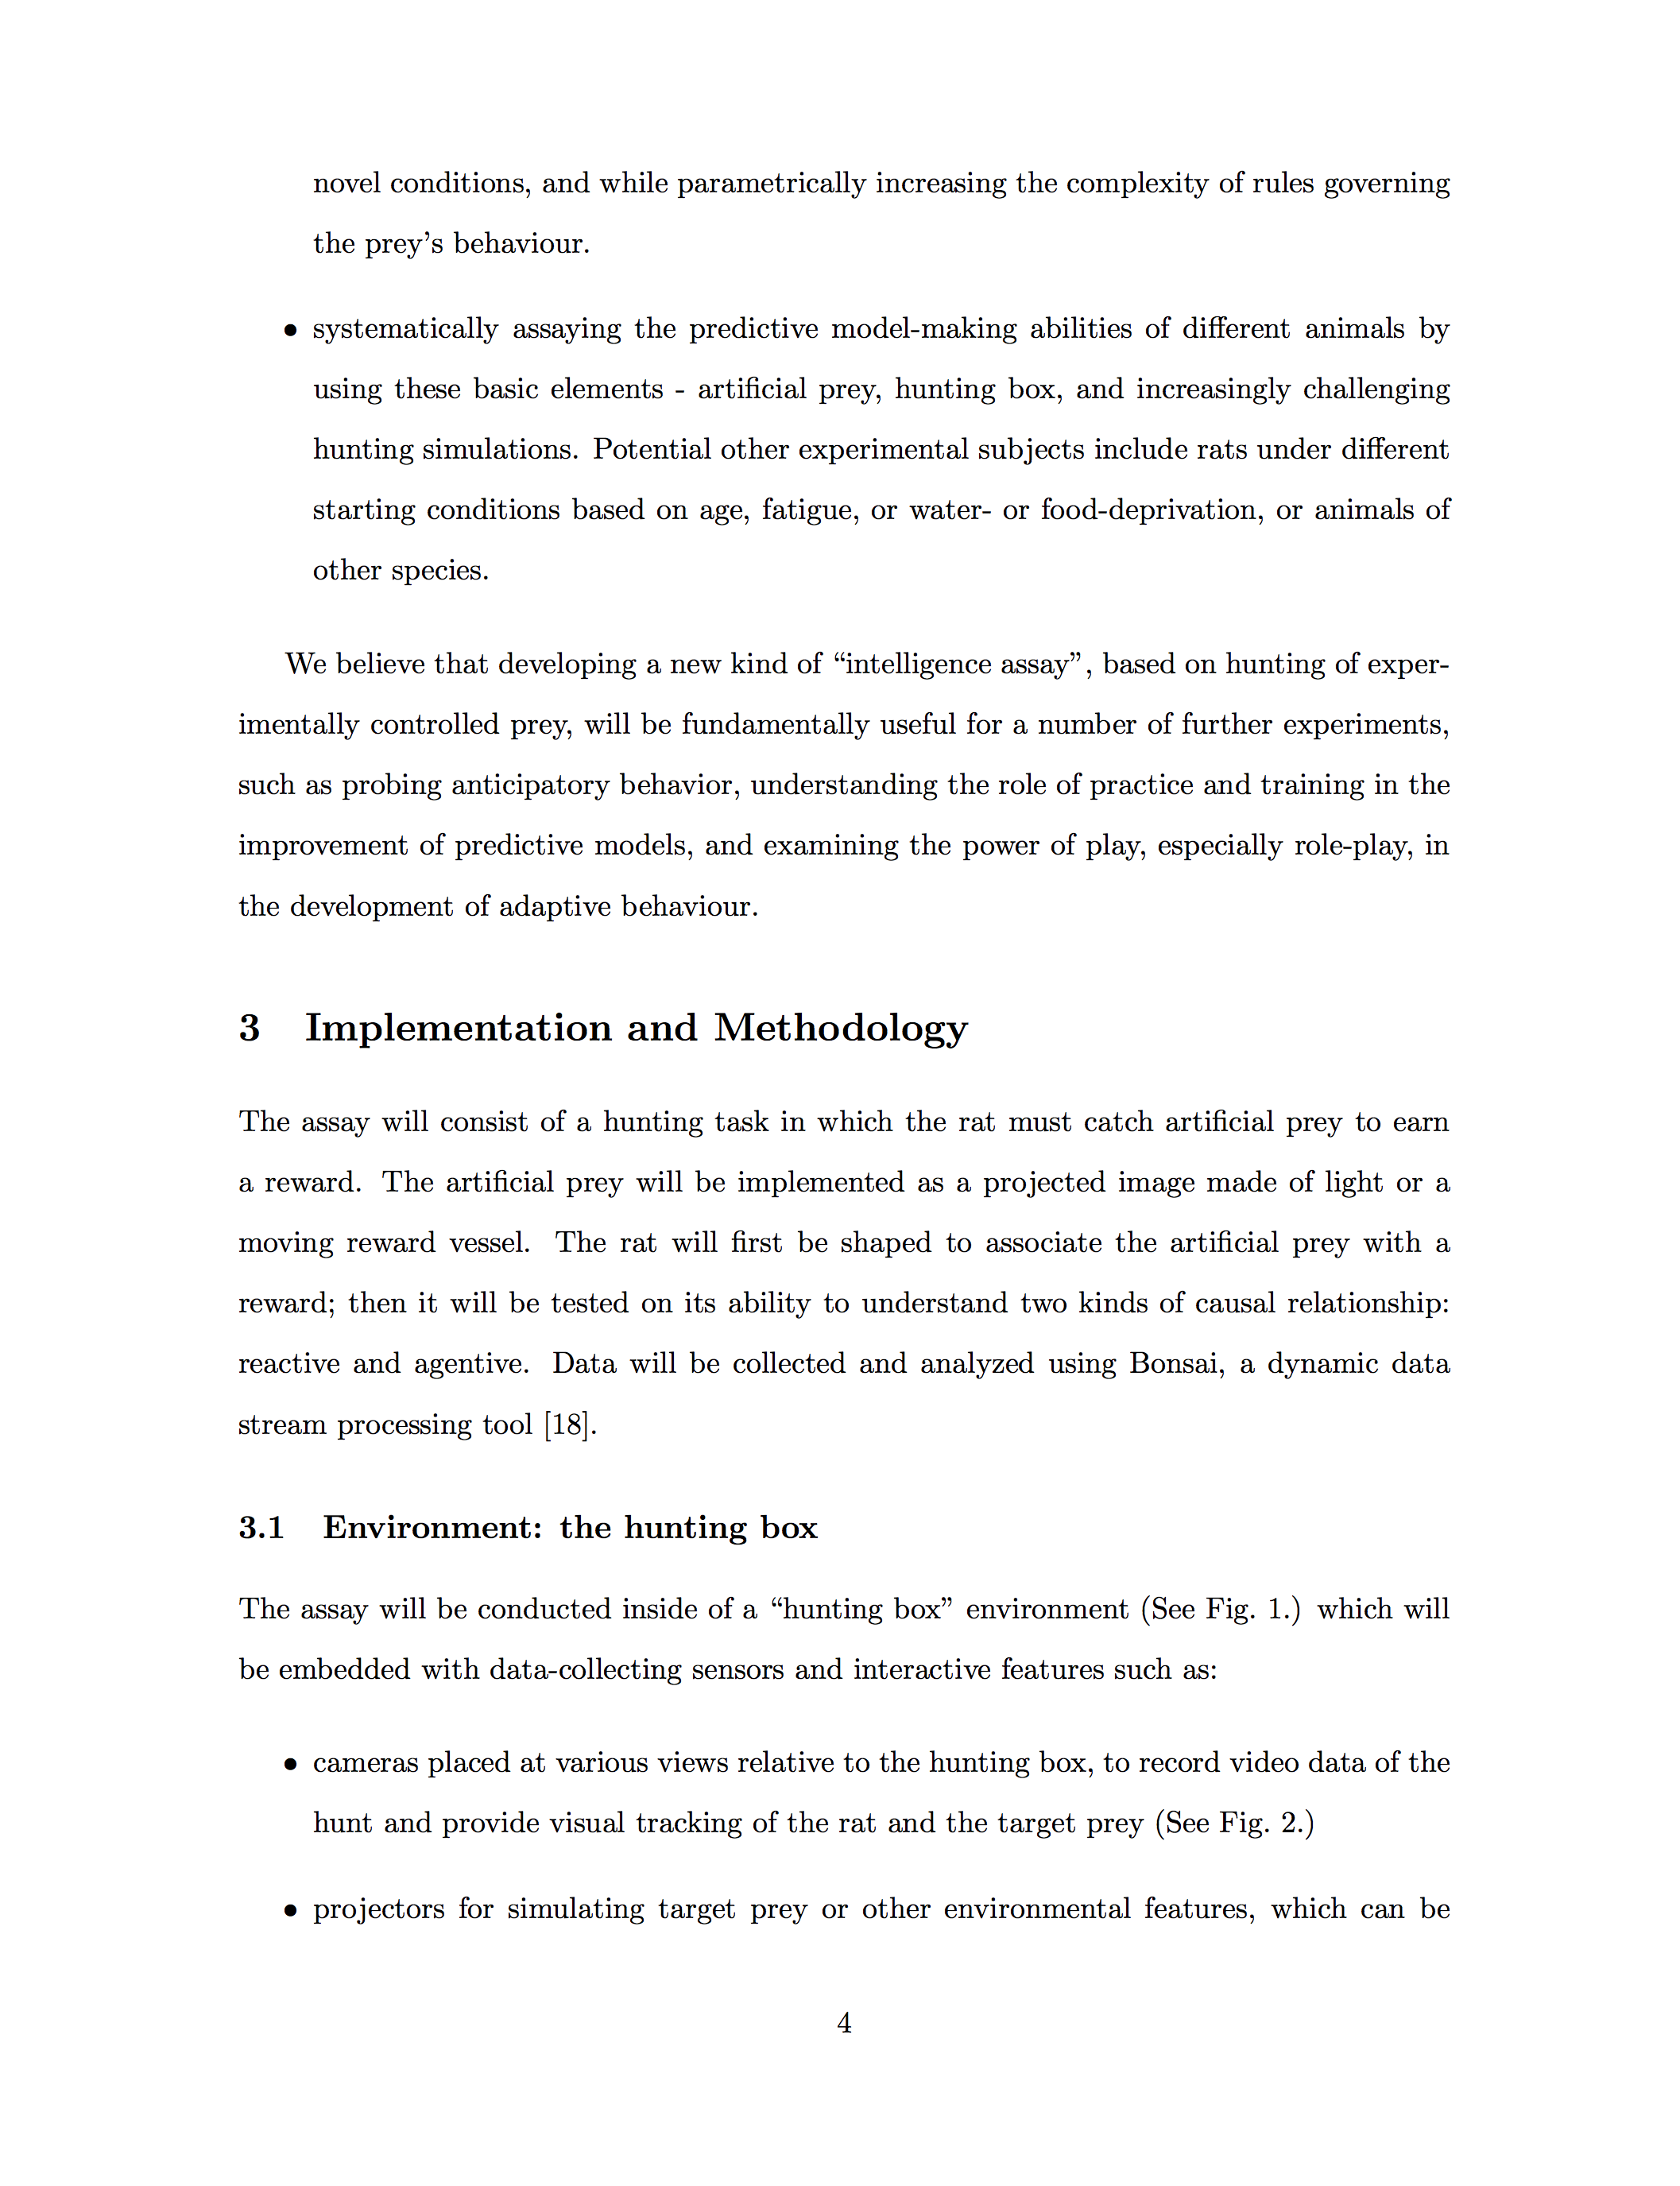 PhD thesis proposal, page 04